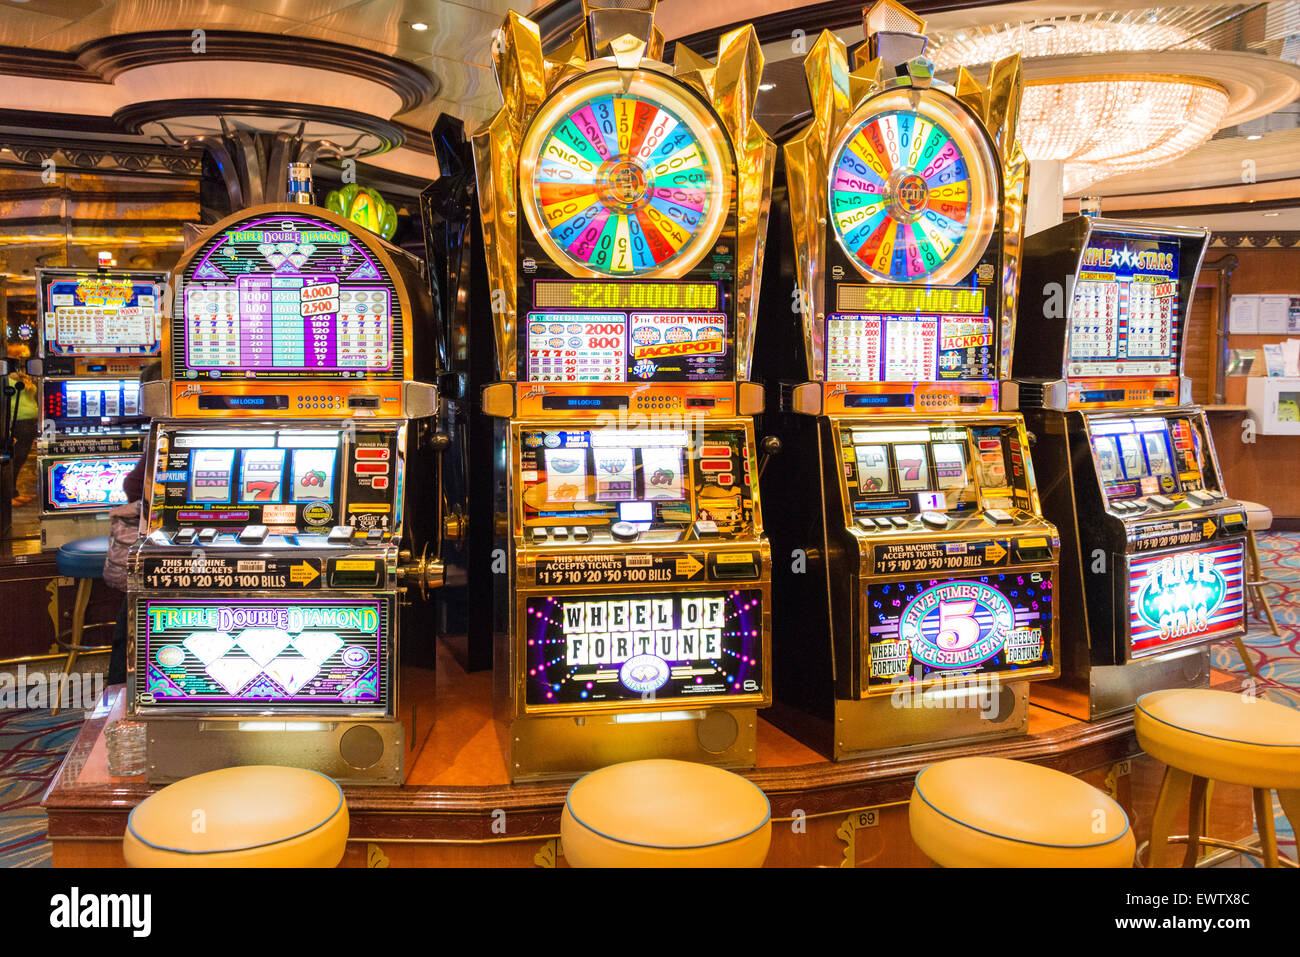 Slot machines in casino on board Royal Caribbean 'Brilliance of the Seas' cruise ship, North Sea, Europe - Stock Image